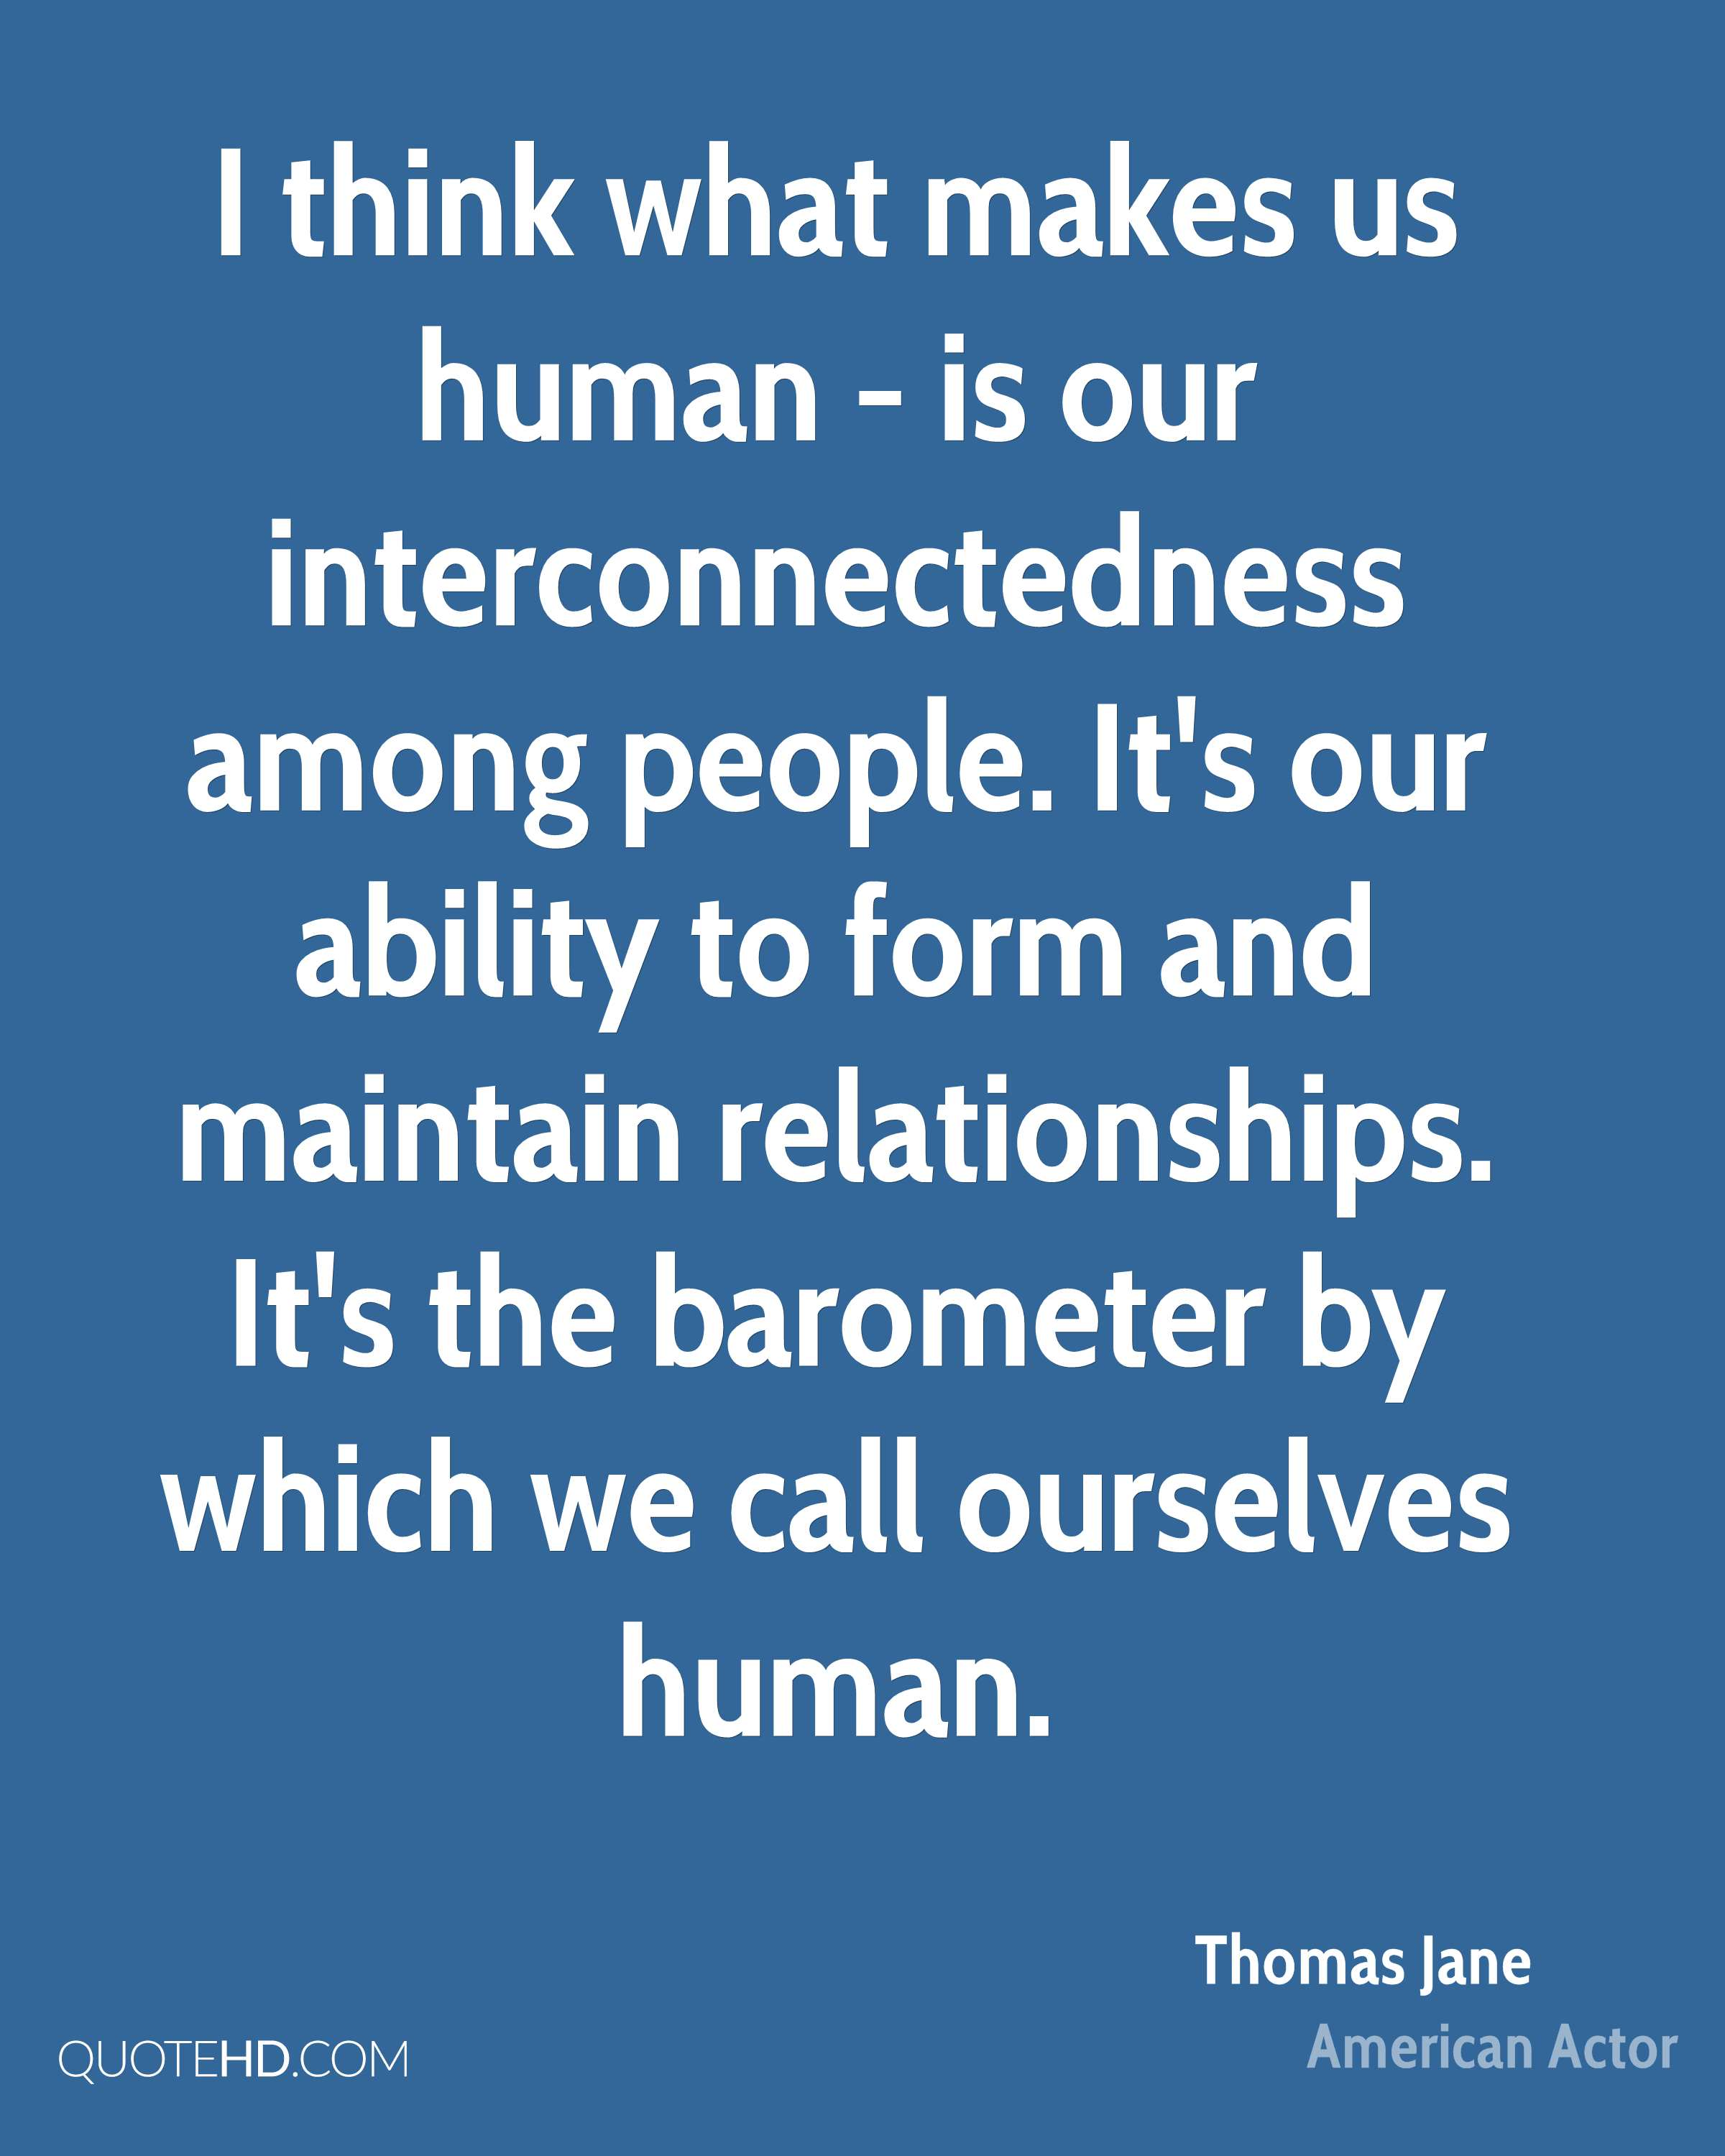 I think what makes us human - is our interconnectedness among people. It's our ability to form and maintain relationships. It's the barometer by which we call ourselves human.